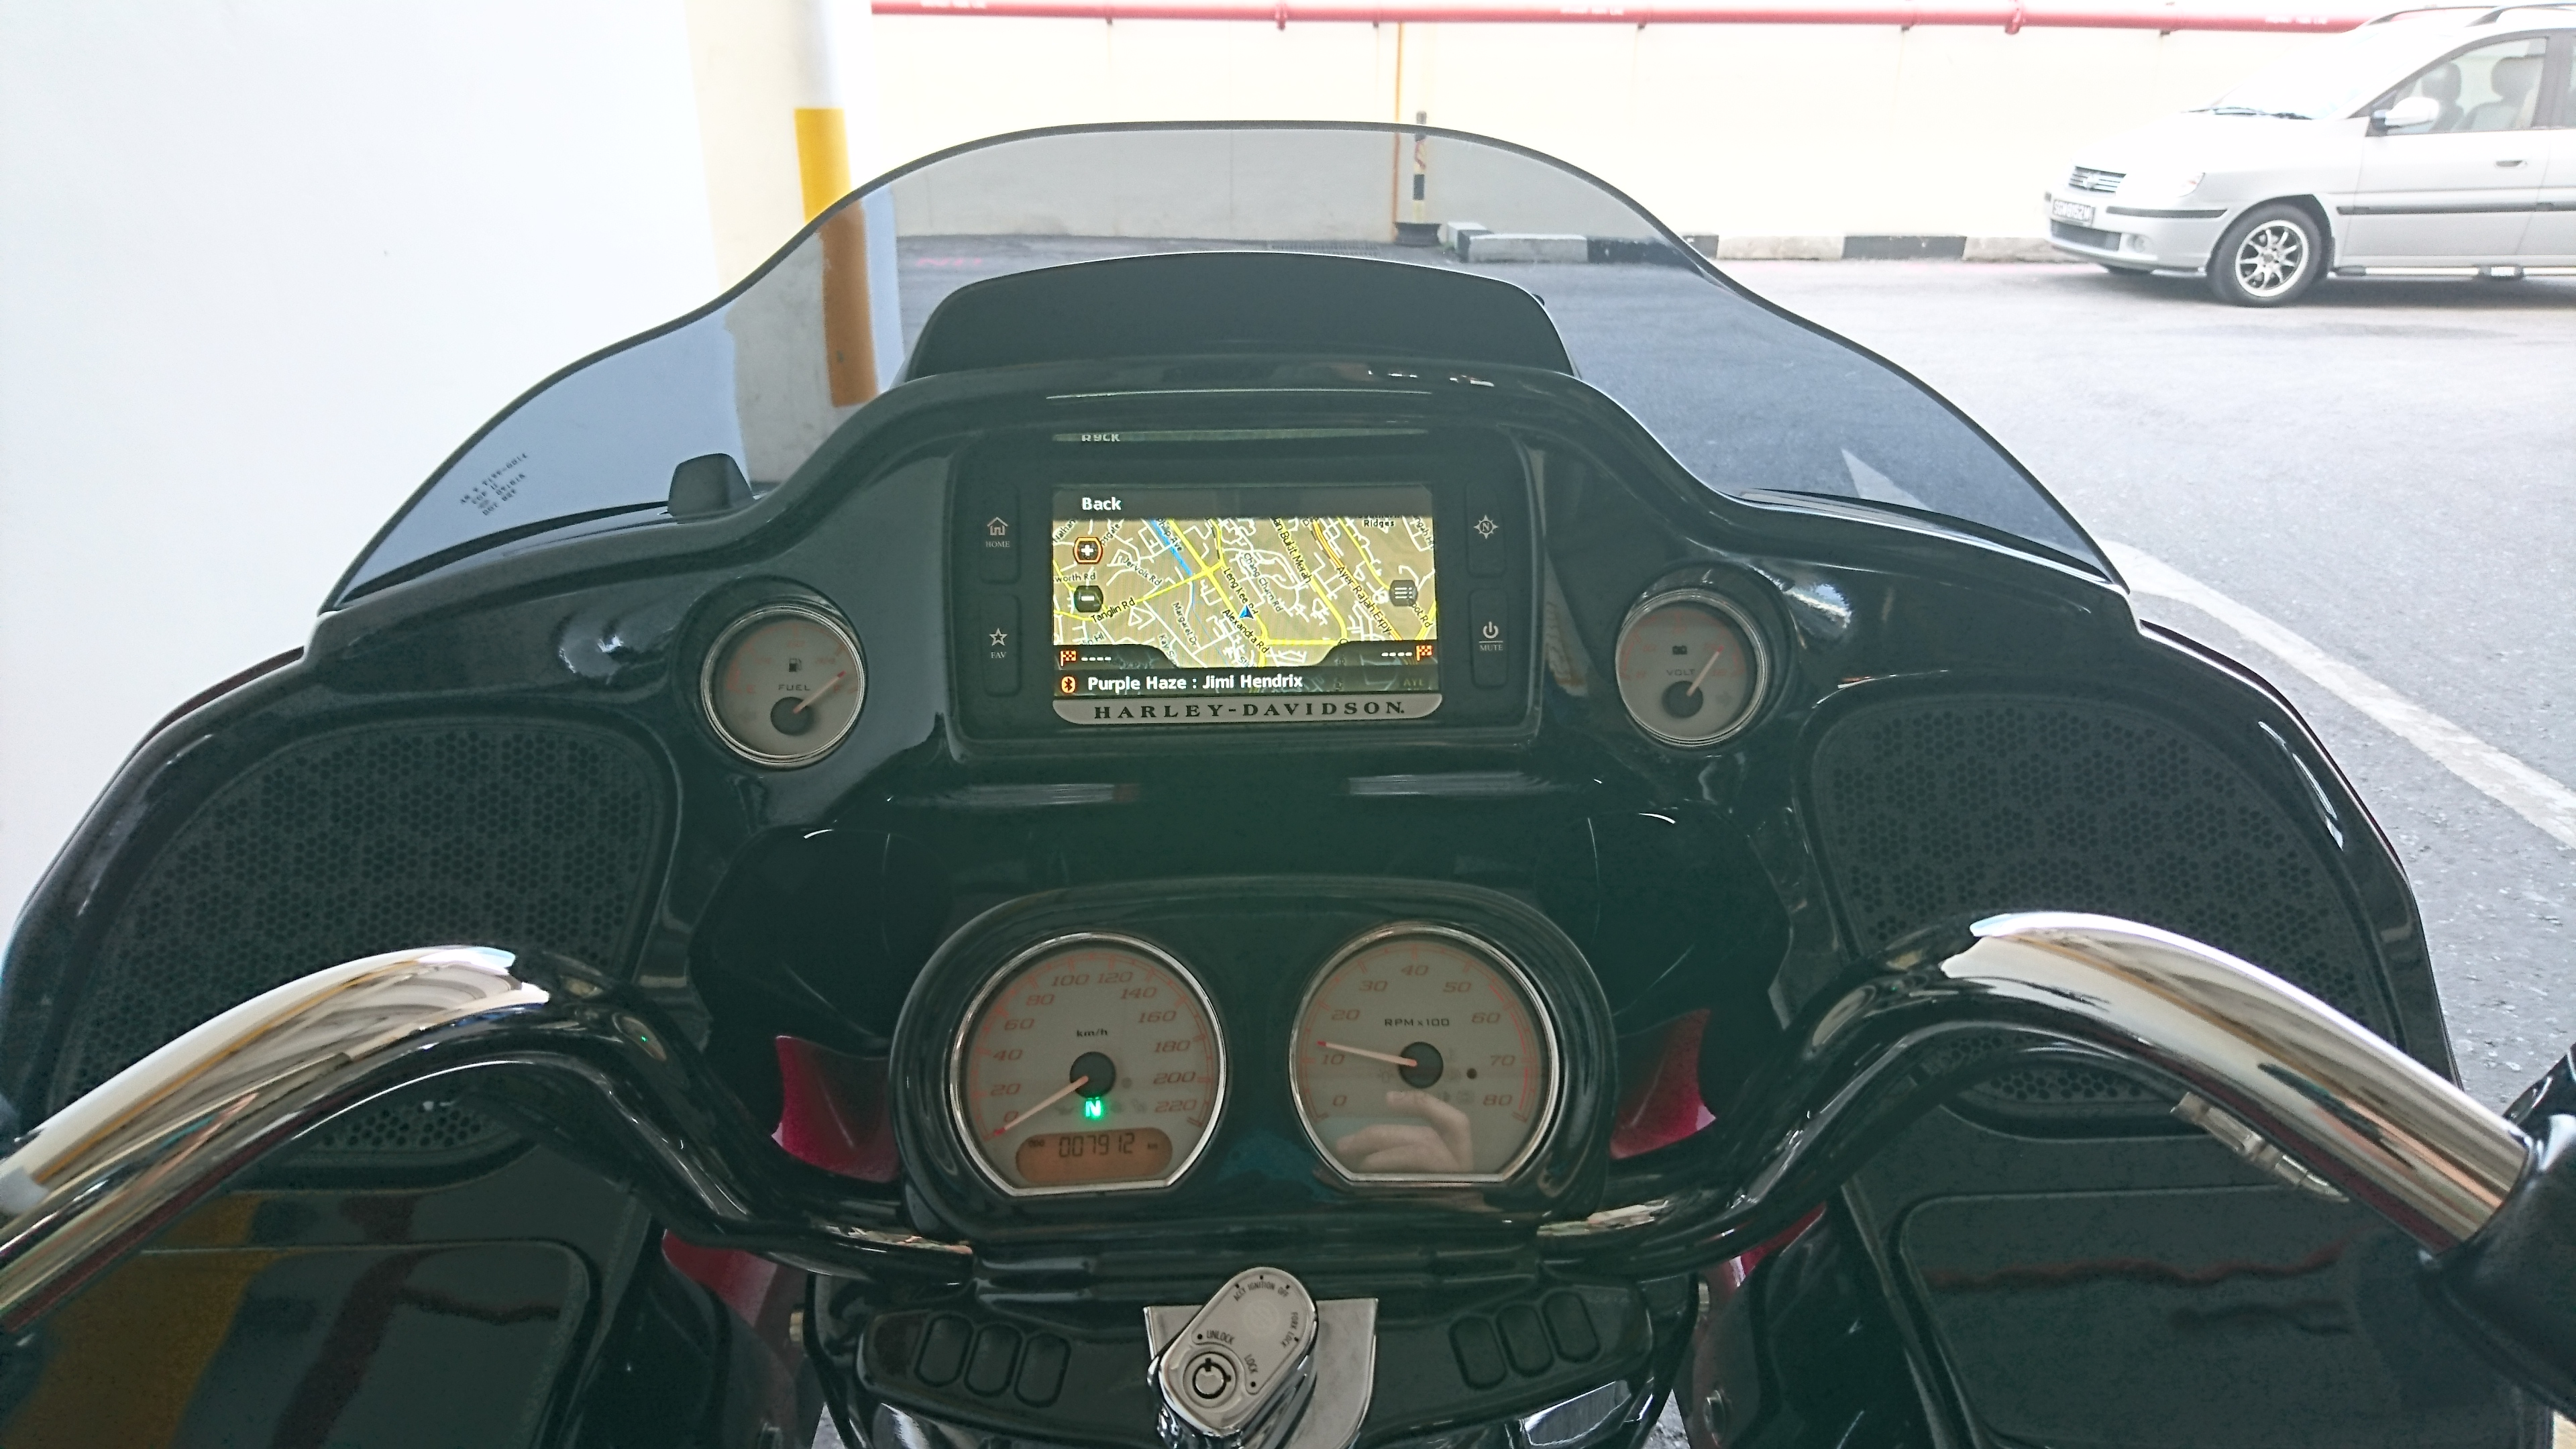 Infotainment System on the Harley Davidson Street Glide Special